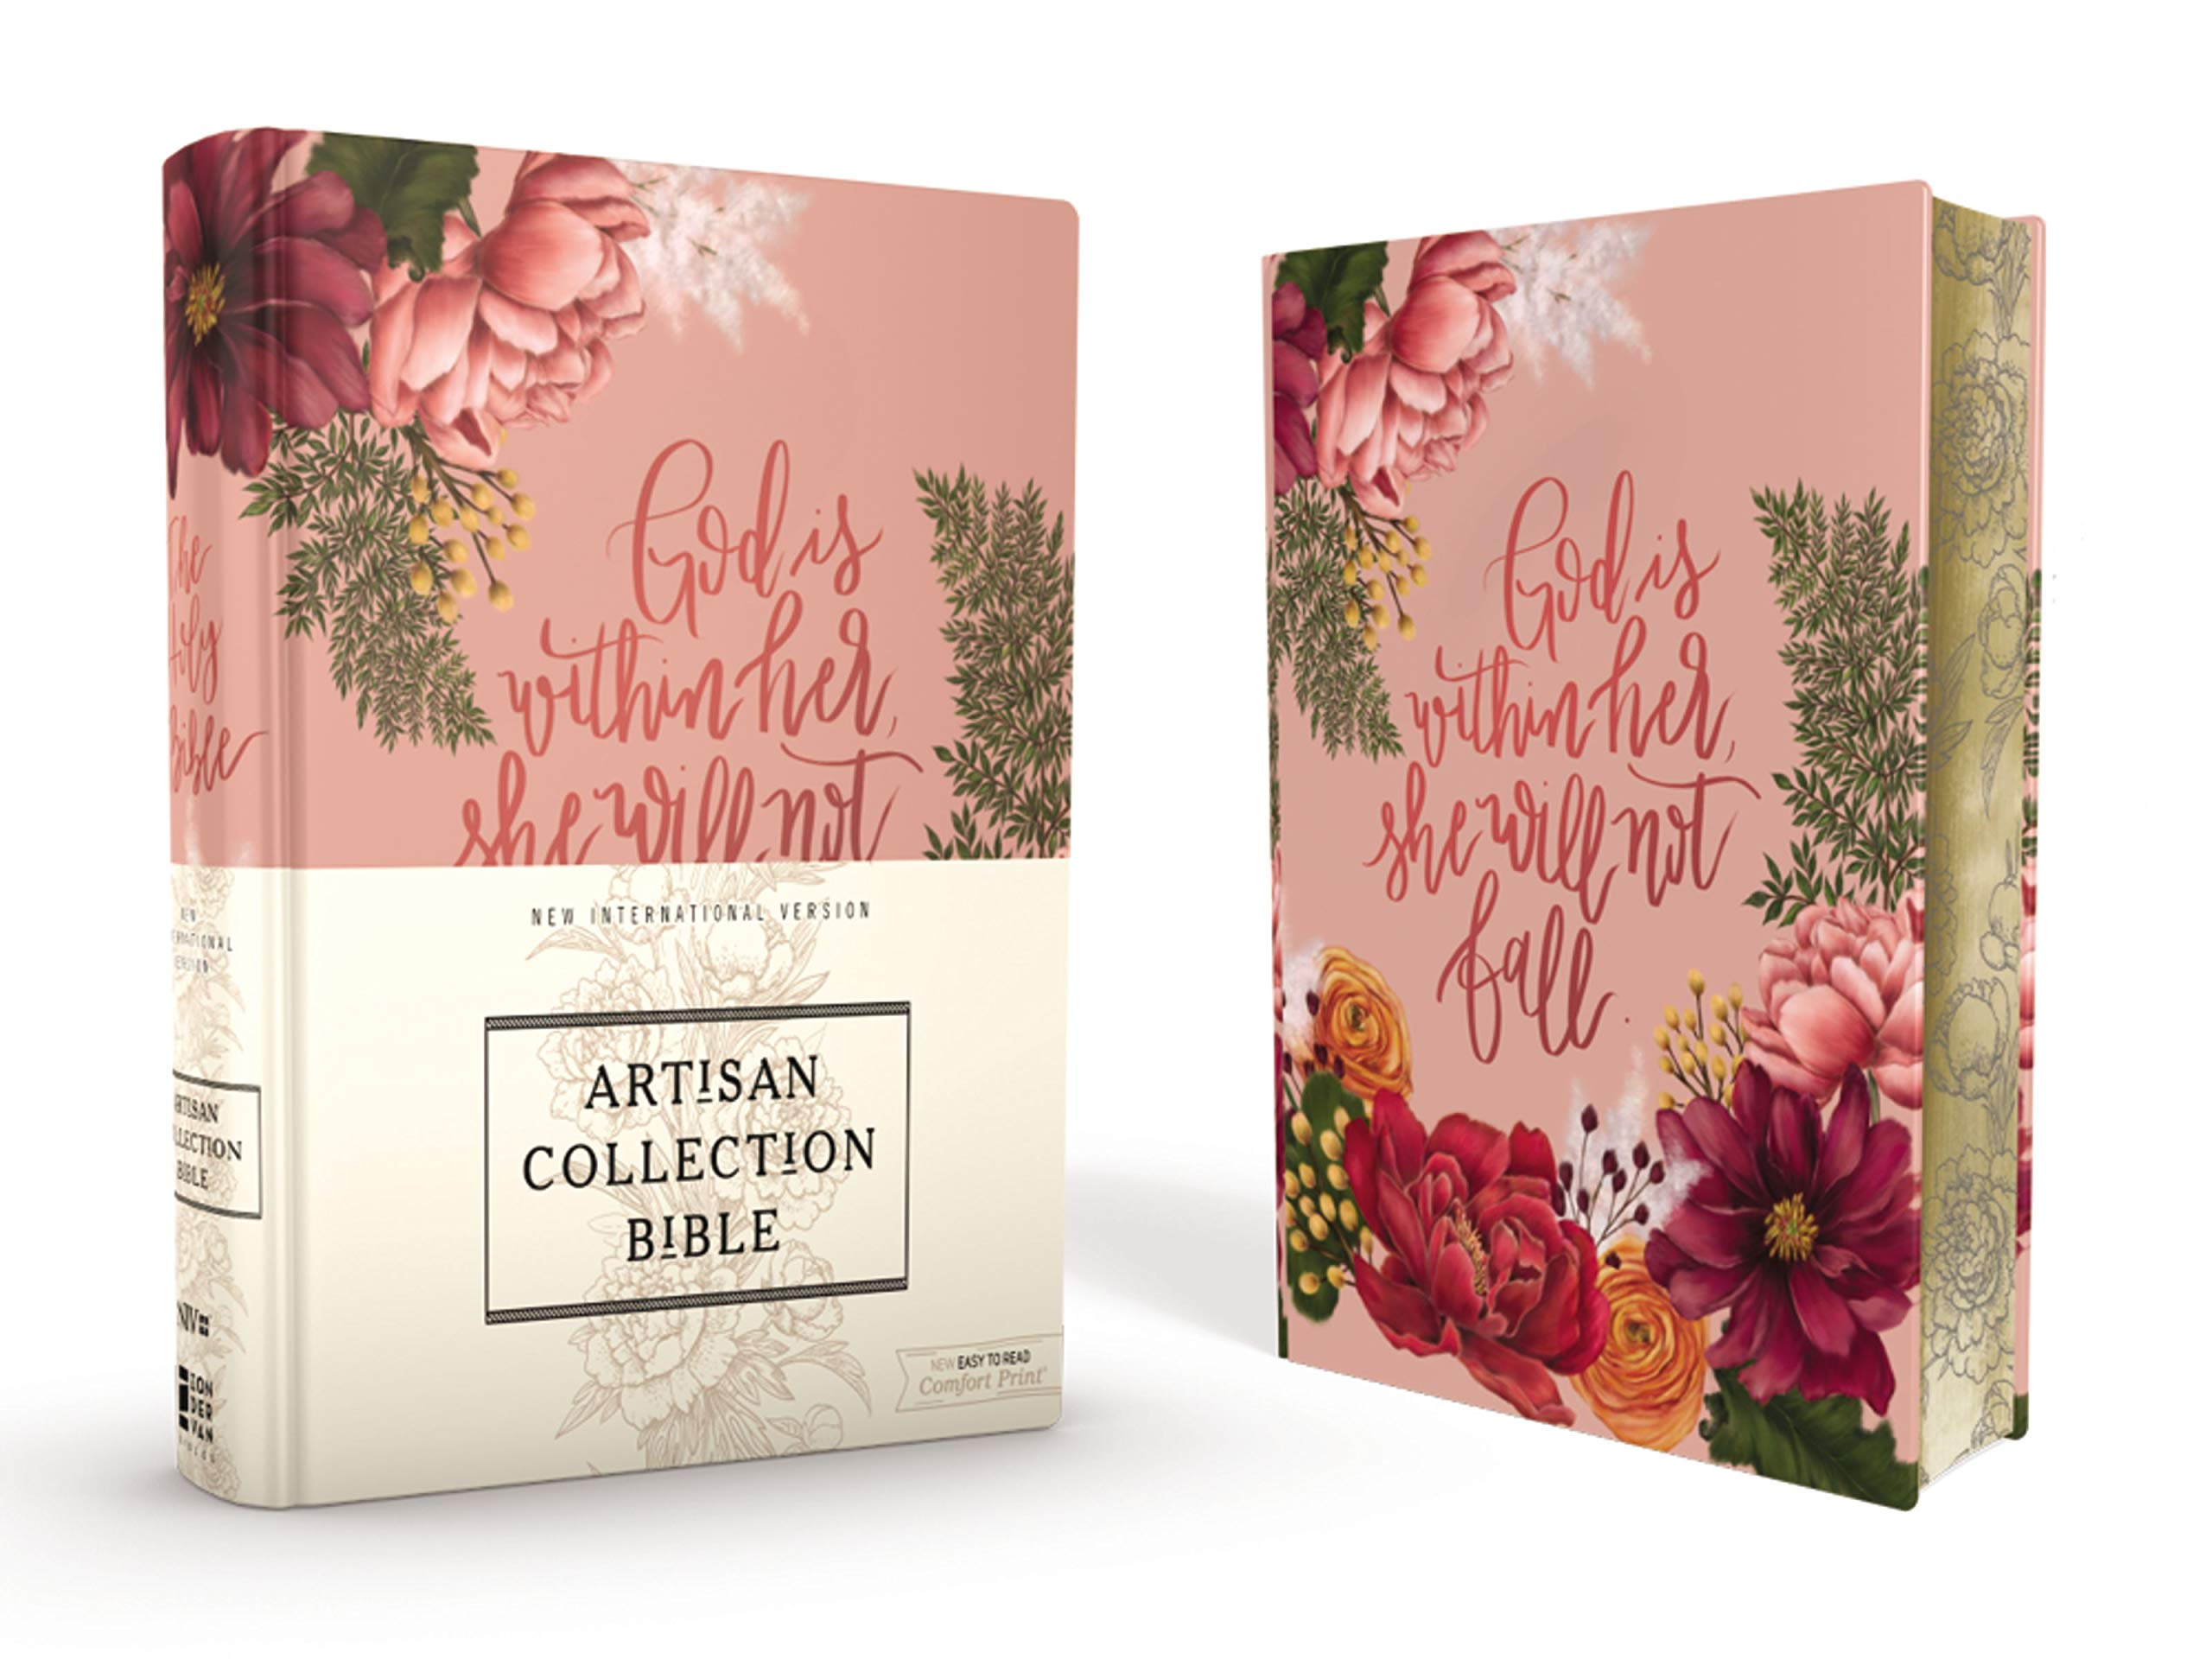 NIV, Artisan Collection Bible, Cloth over Board, Pink Floral, Designed Edges under Gilding, Red Letter Edition, Comfort Print by HarperCollins Christian Pub.